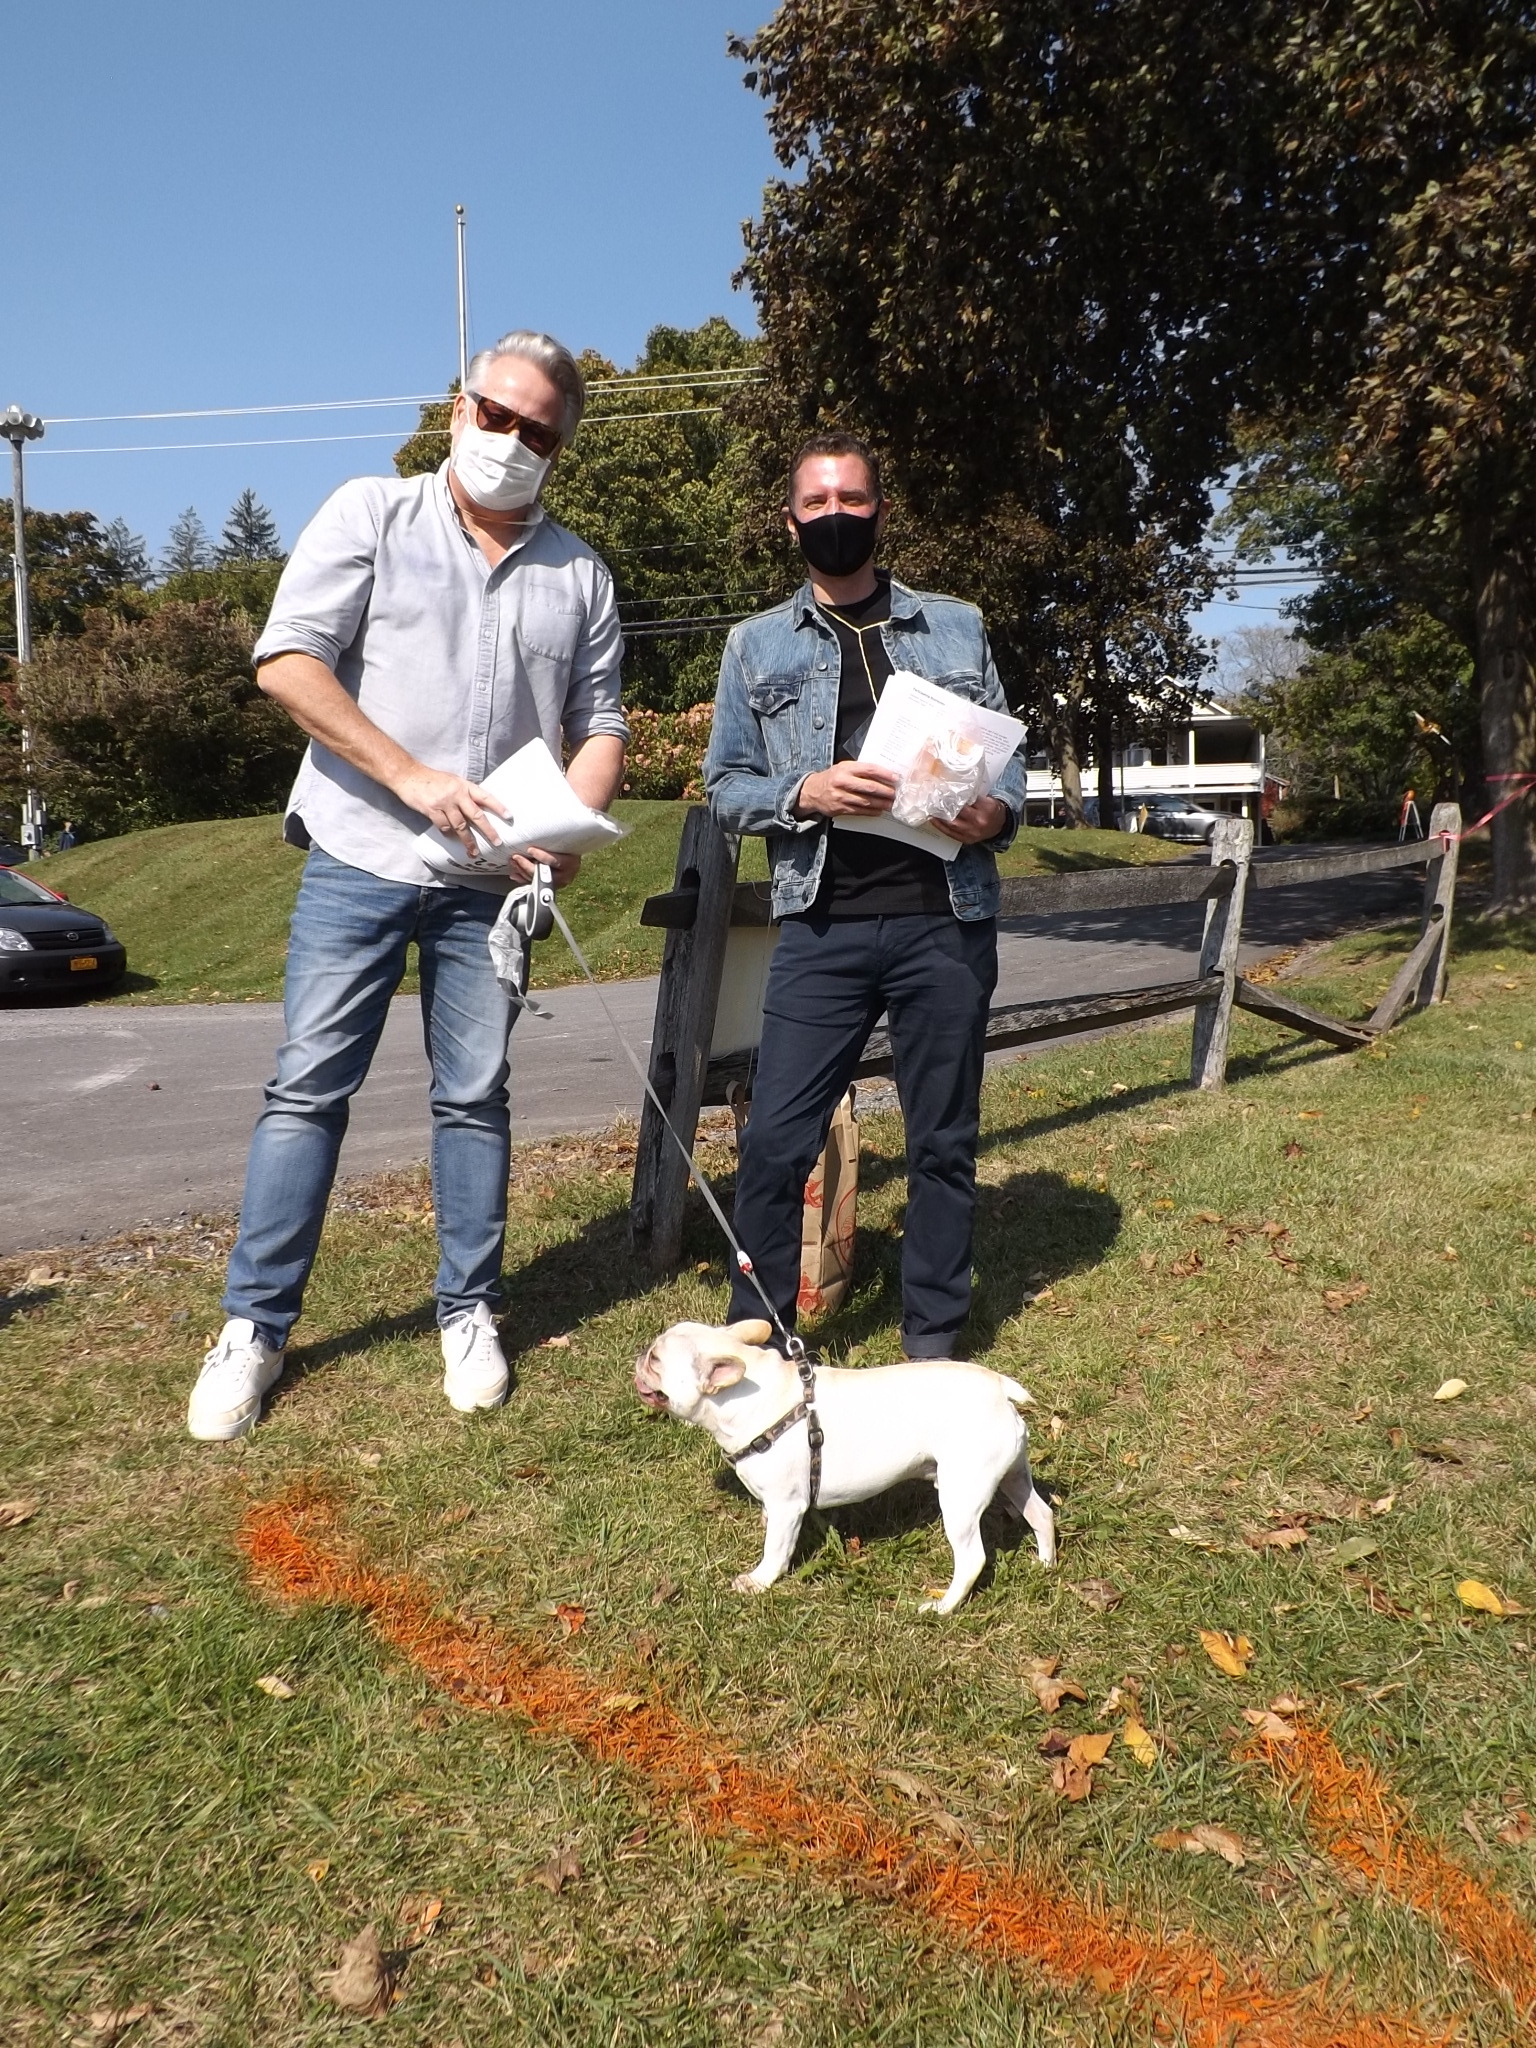 <strong>Leon Green, left, and Jason Durant welcomed visitors to the town of Hillsdale's Hamlet Park for the ninth annual Pumpkin Festival with help from Alfie, the French bull dog. <em>Photo by Kaitlin Lyle</em></strong>